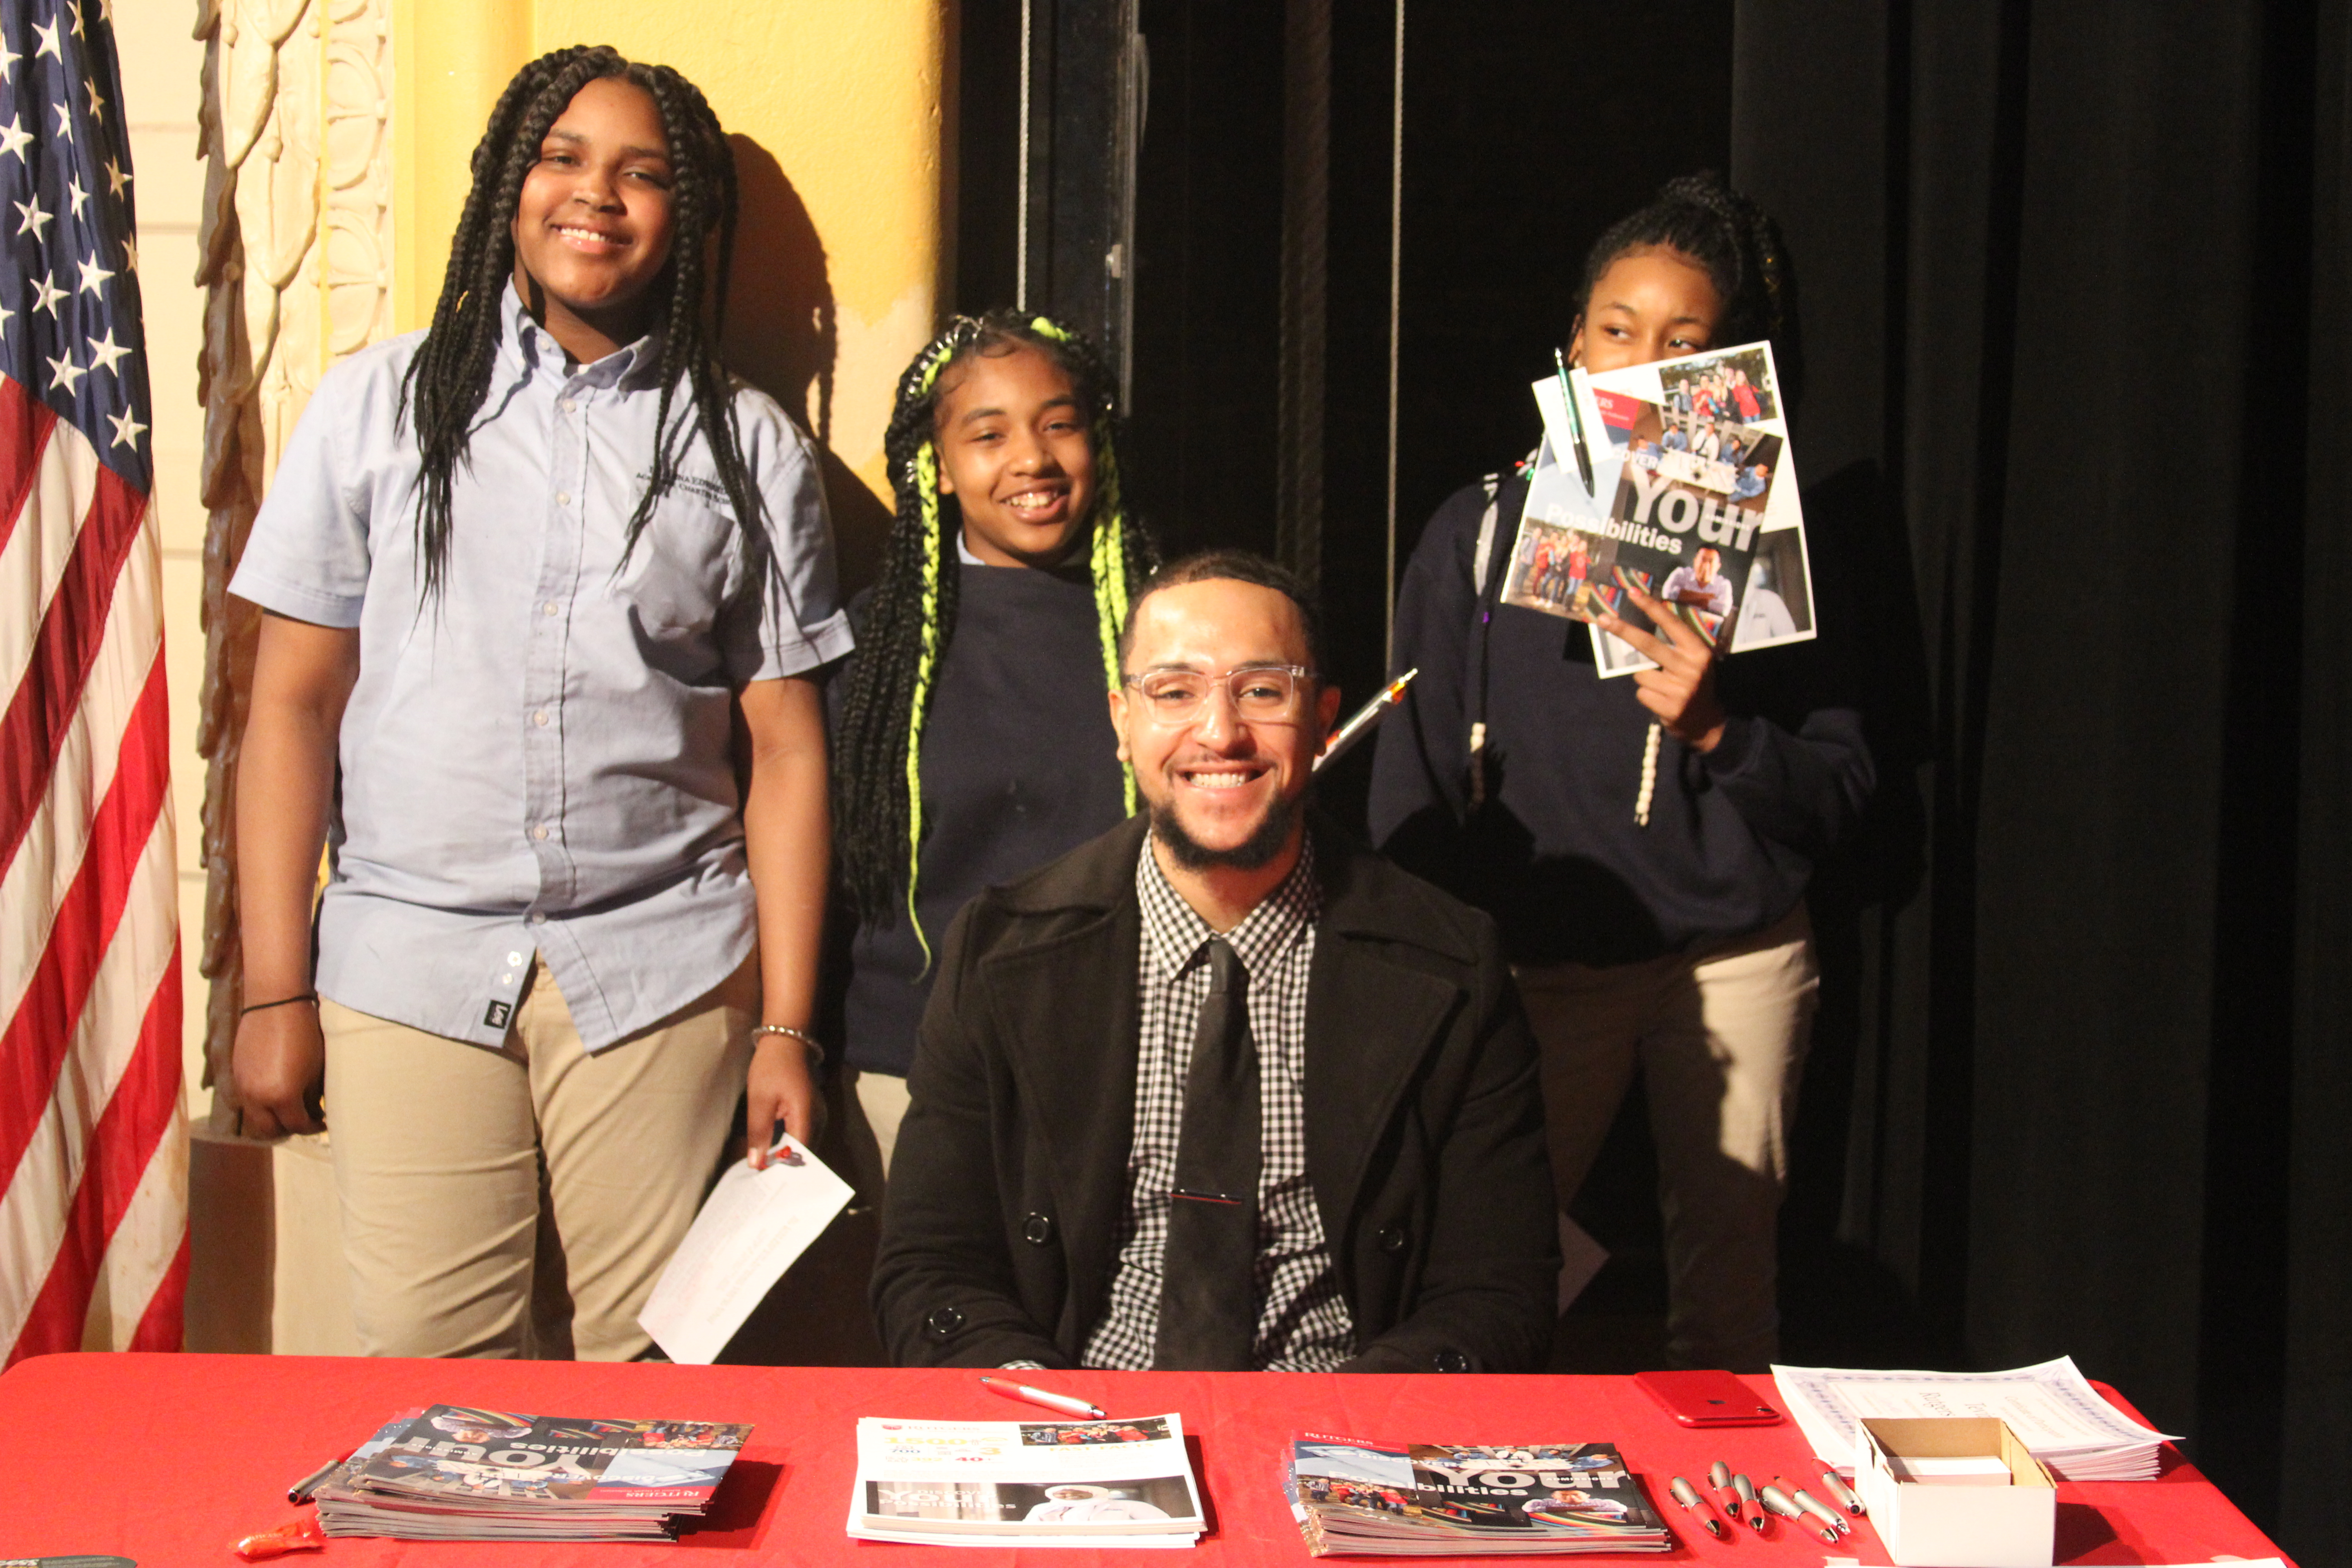 Rutgers Tevin Resse with students